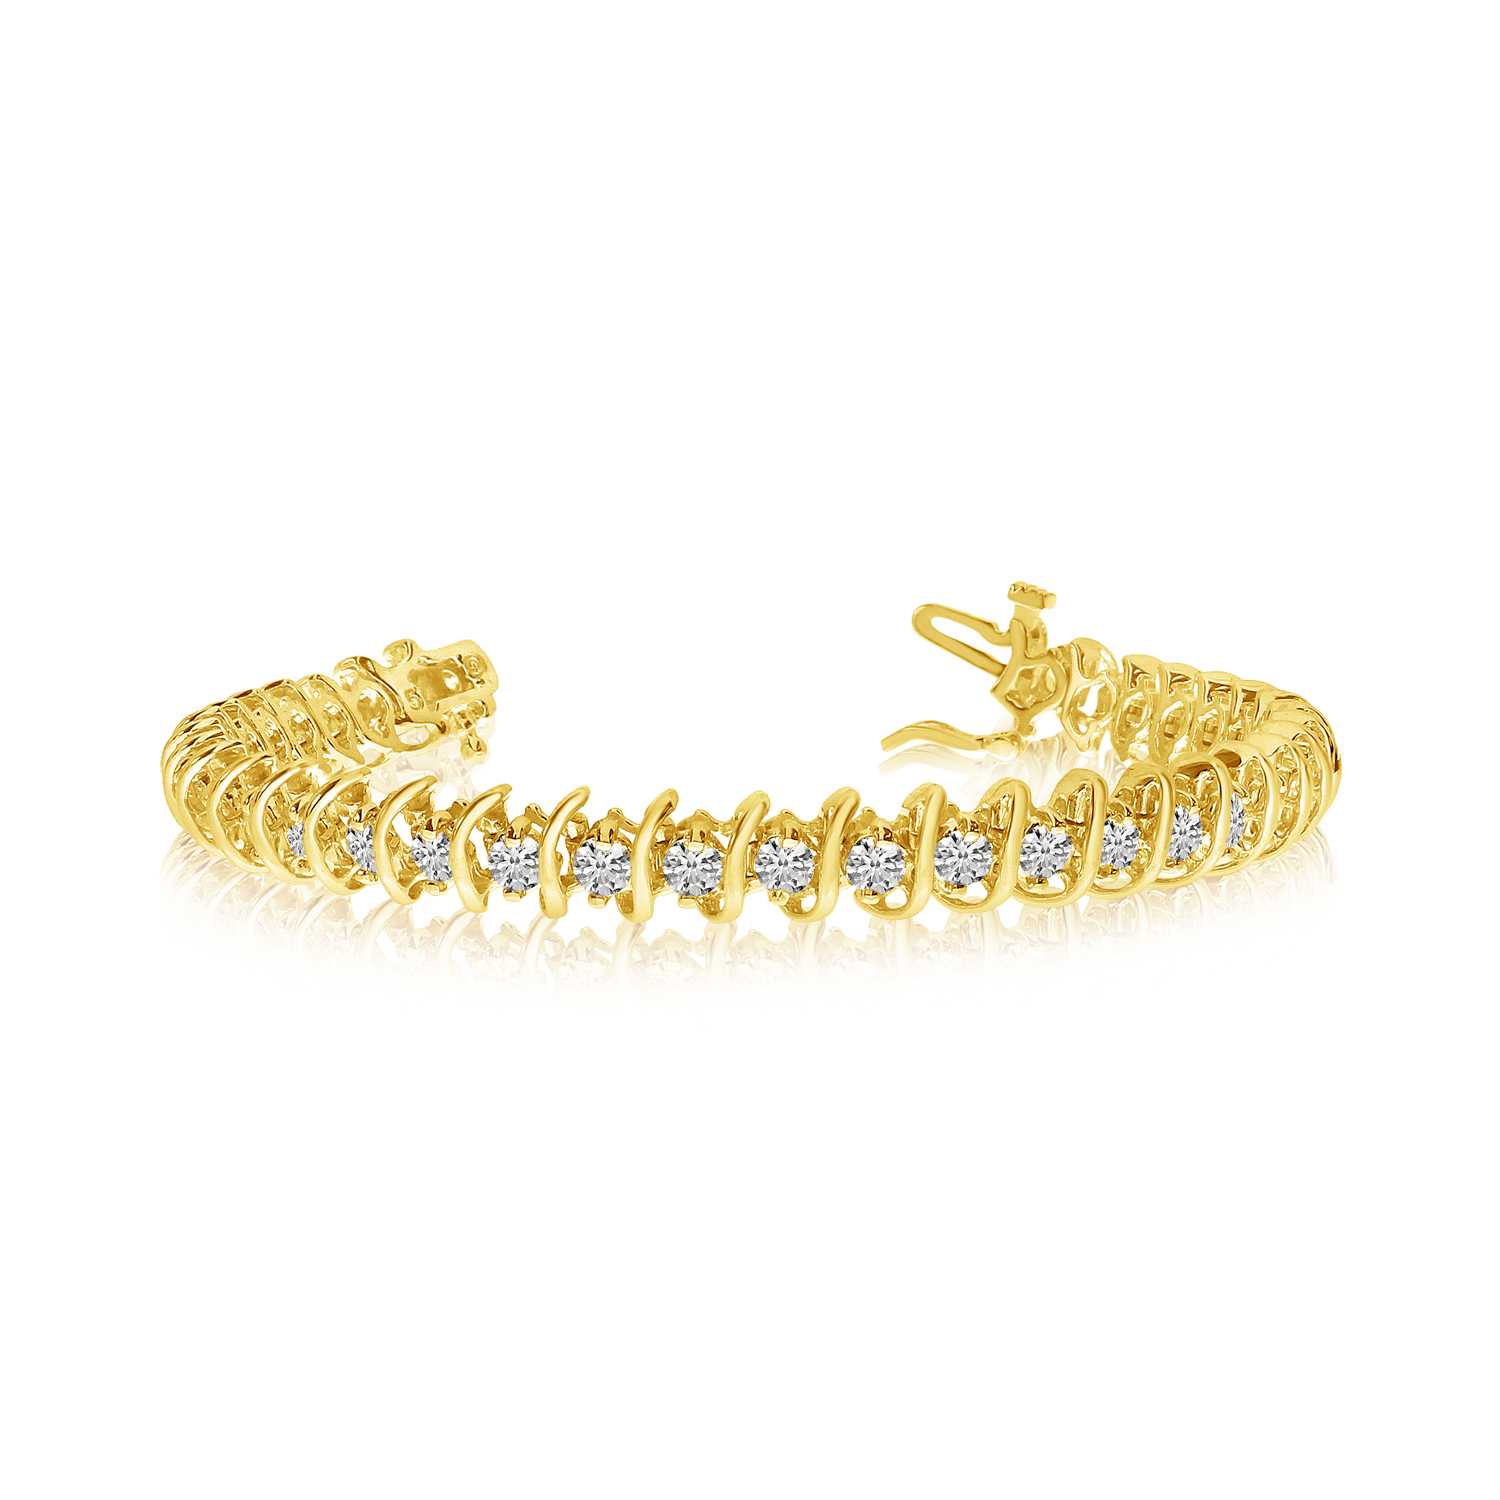 14K Yellow Gold Rollover S Illusion Diamond Bracelet by